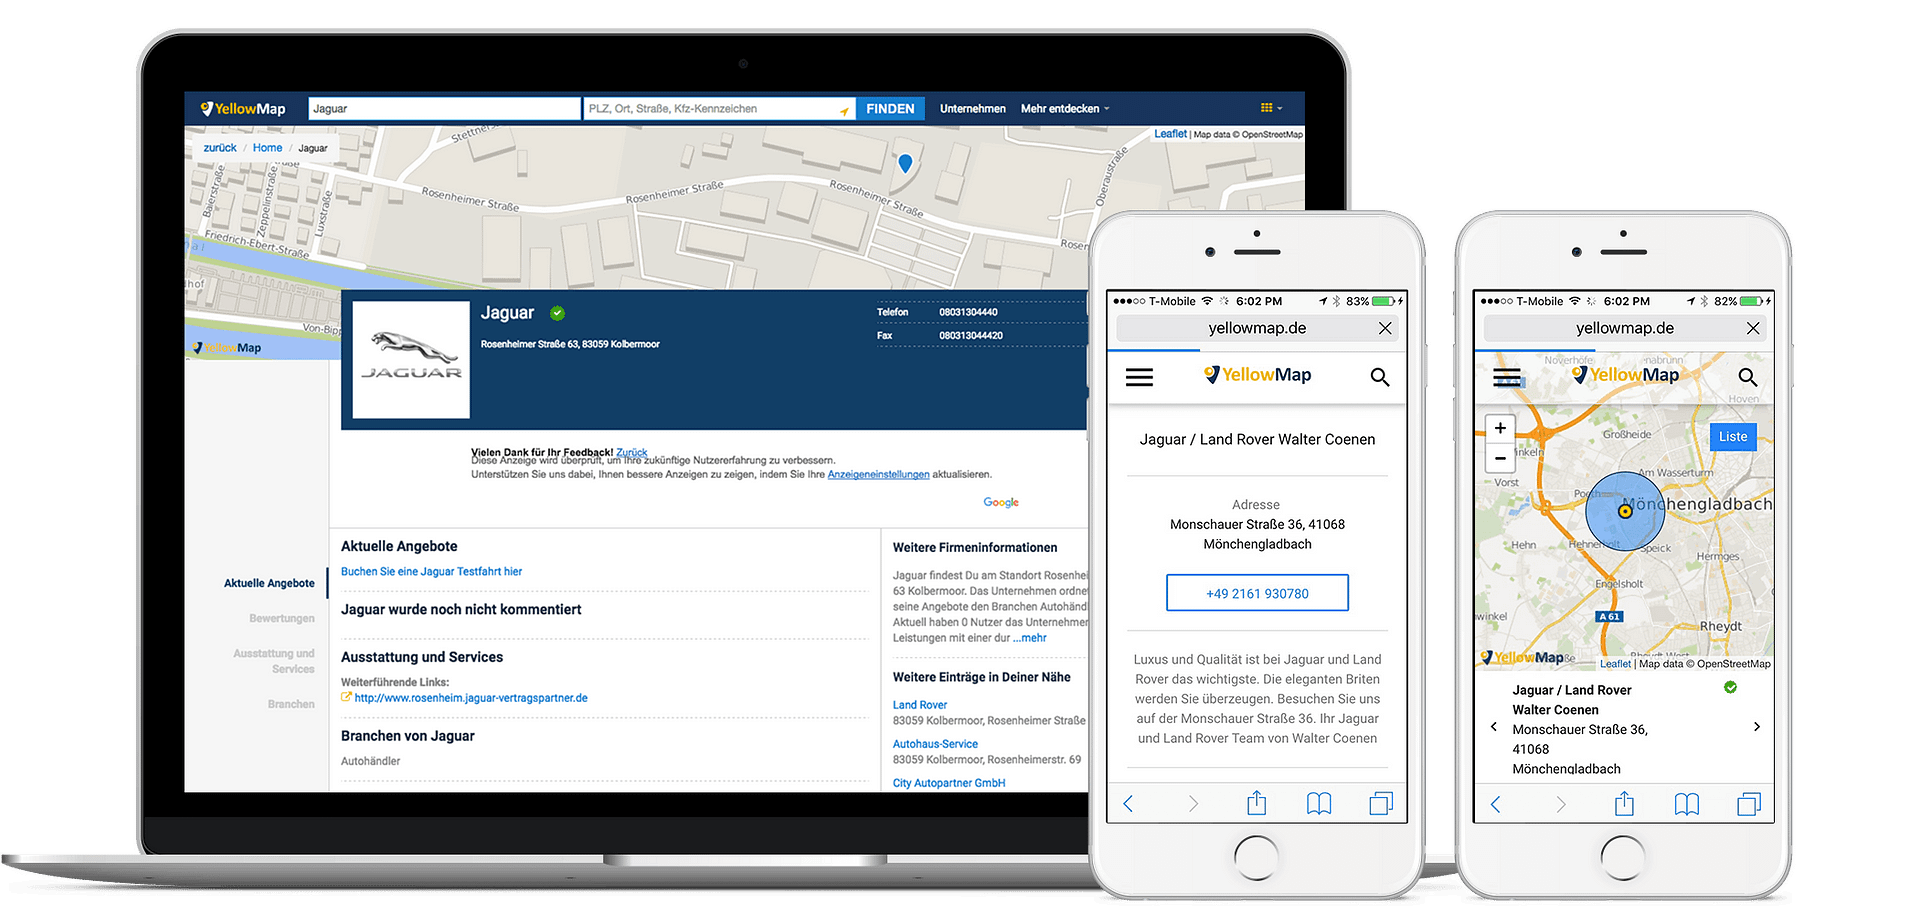 Add Your Business to YellowMap